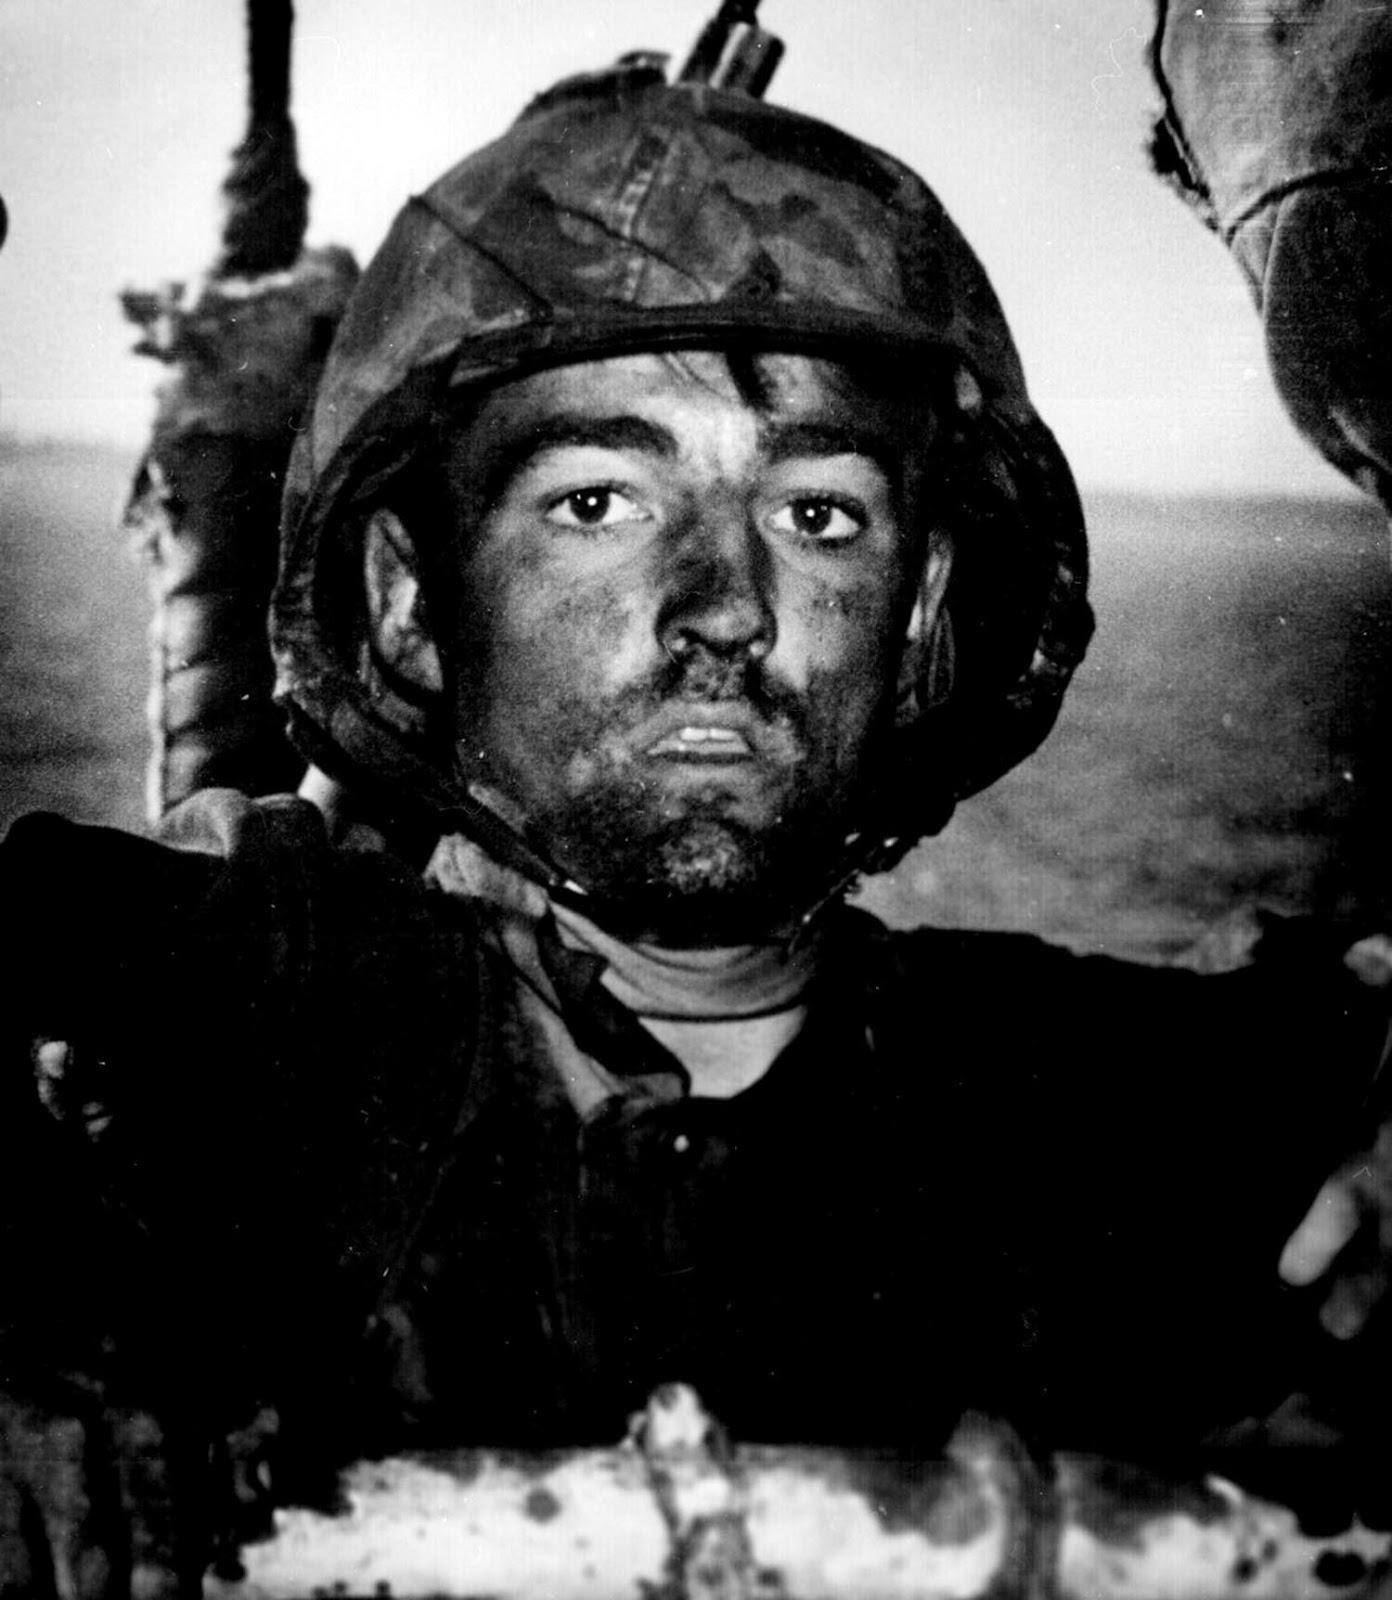 A U.S. Marine exhibits the thousand-yard stare after two days of constant fighting in the Battle of Eniwetok, 1944